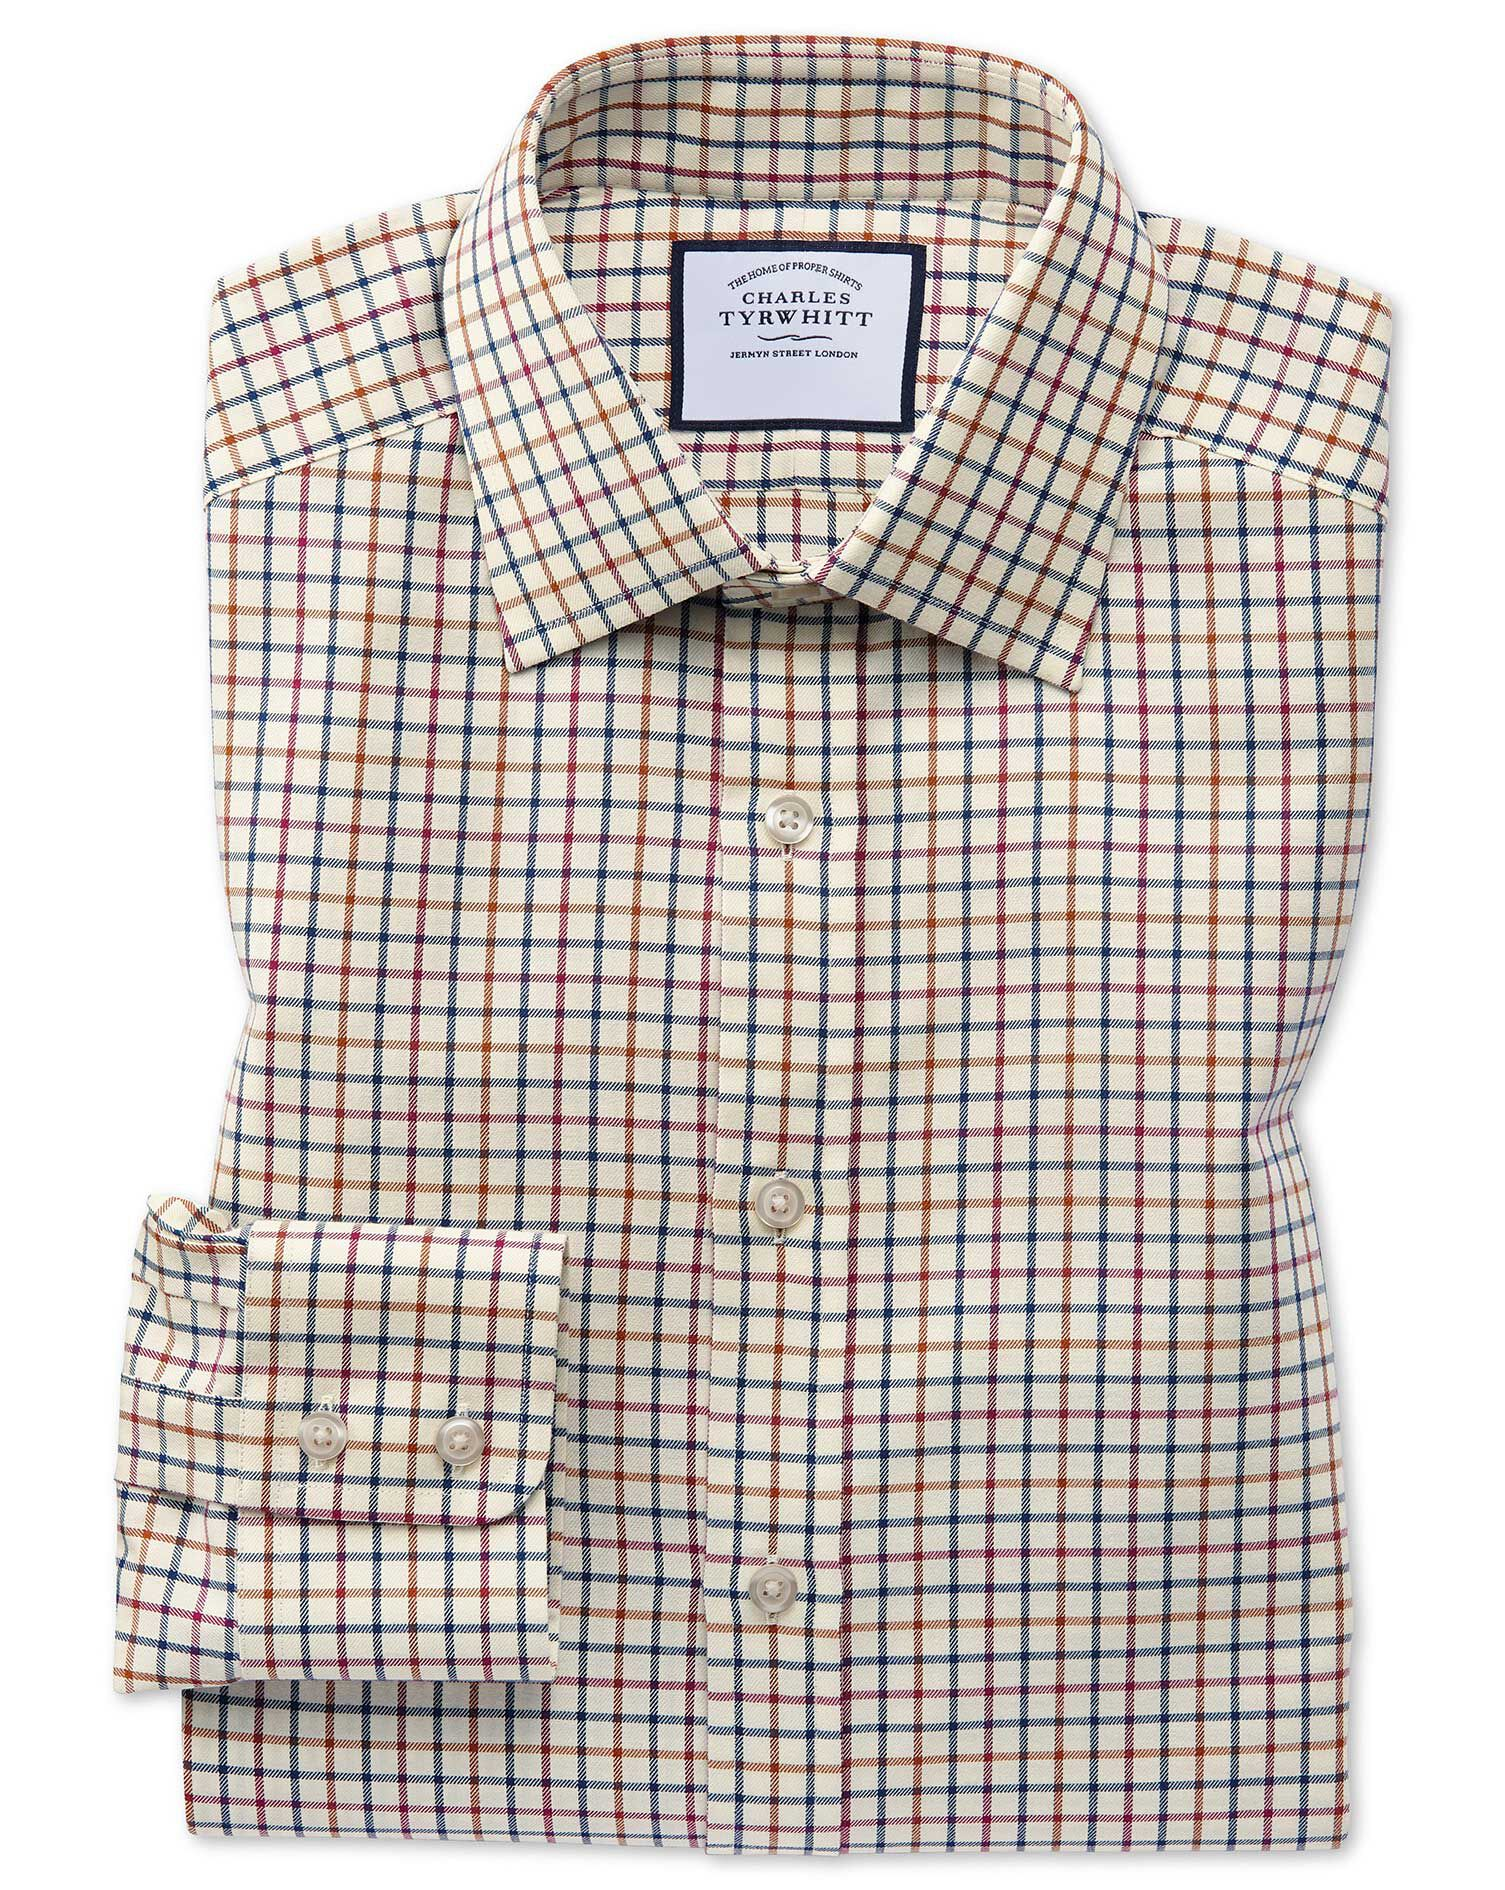 Classic Fit Navy and Berry Country Check Cotton Formal Shirt Single Cuff Size 18/36 by Charles Tyrwh